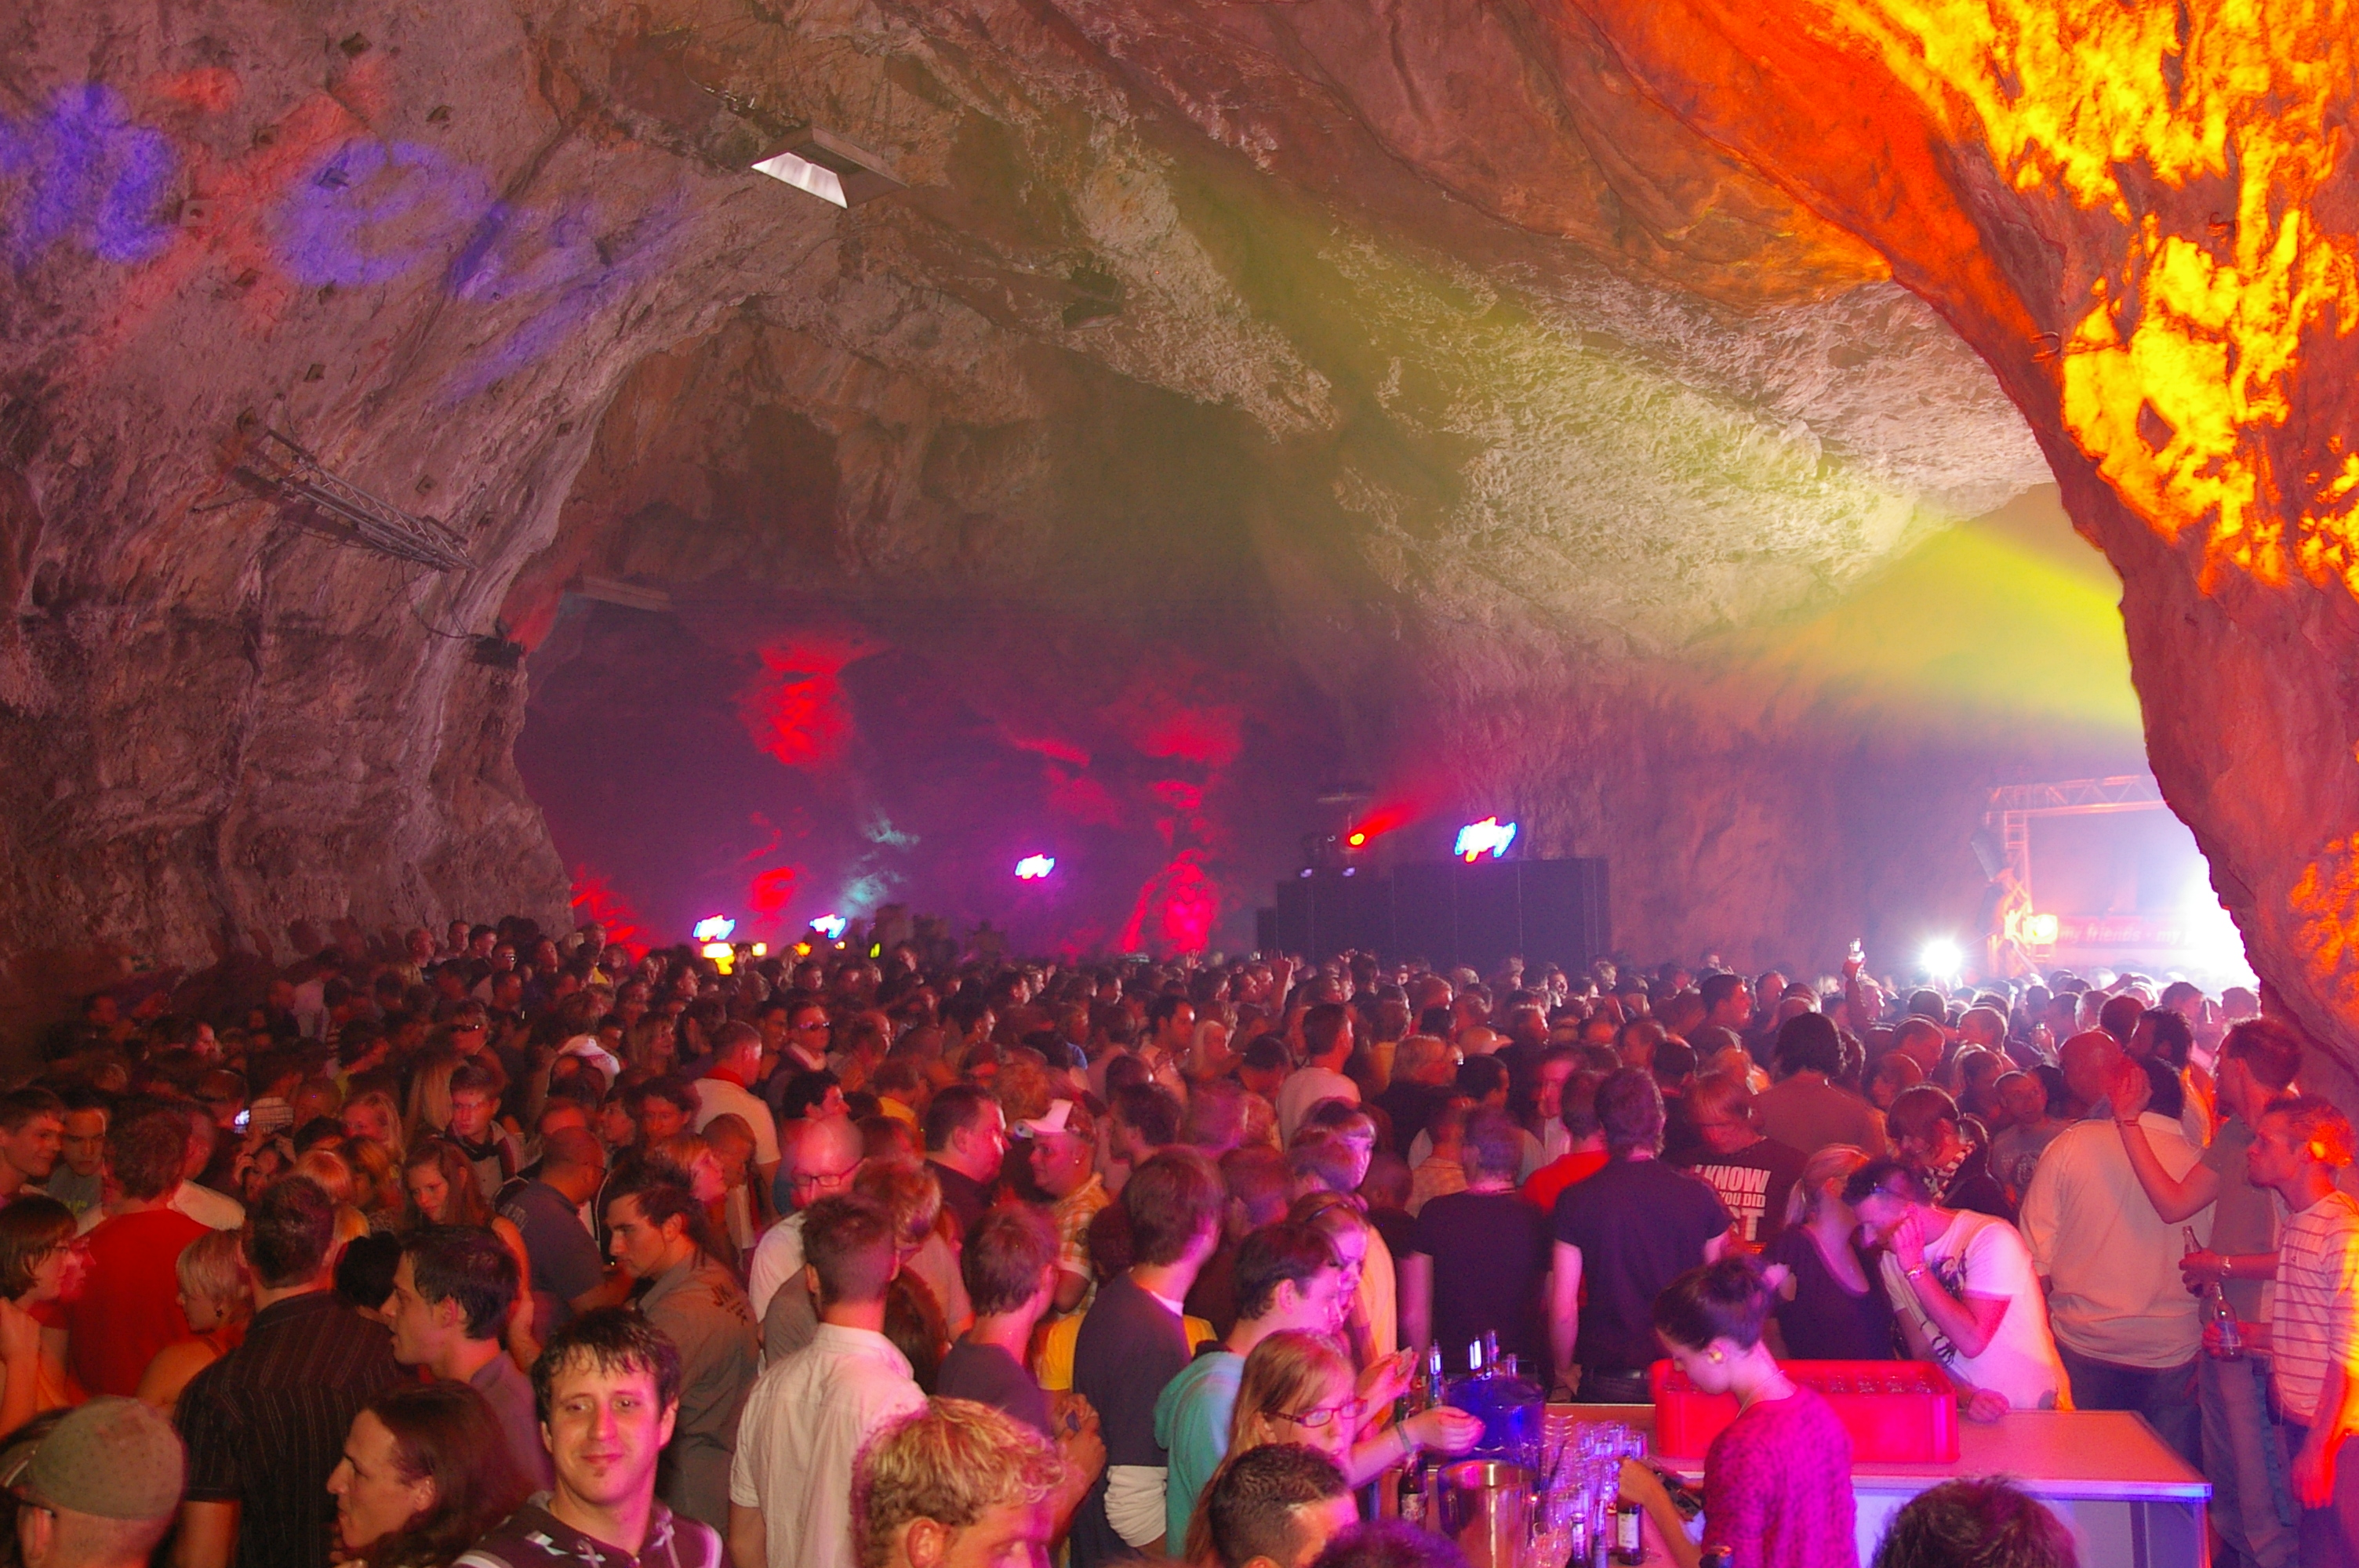 Samstag, 8. September 2012: ab zum Mixery Cave!